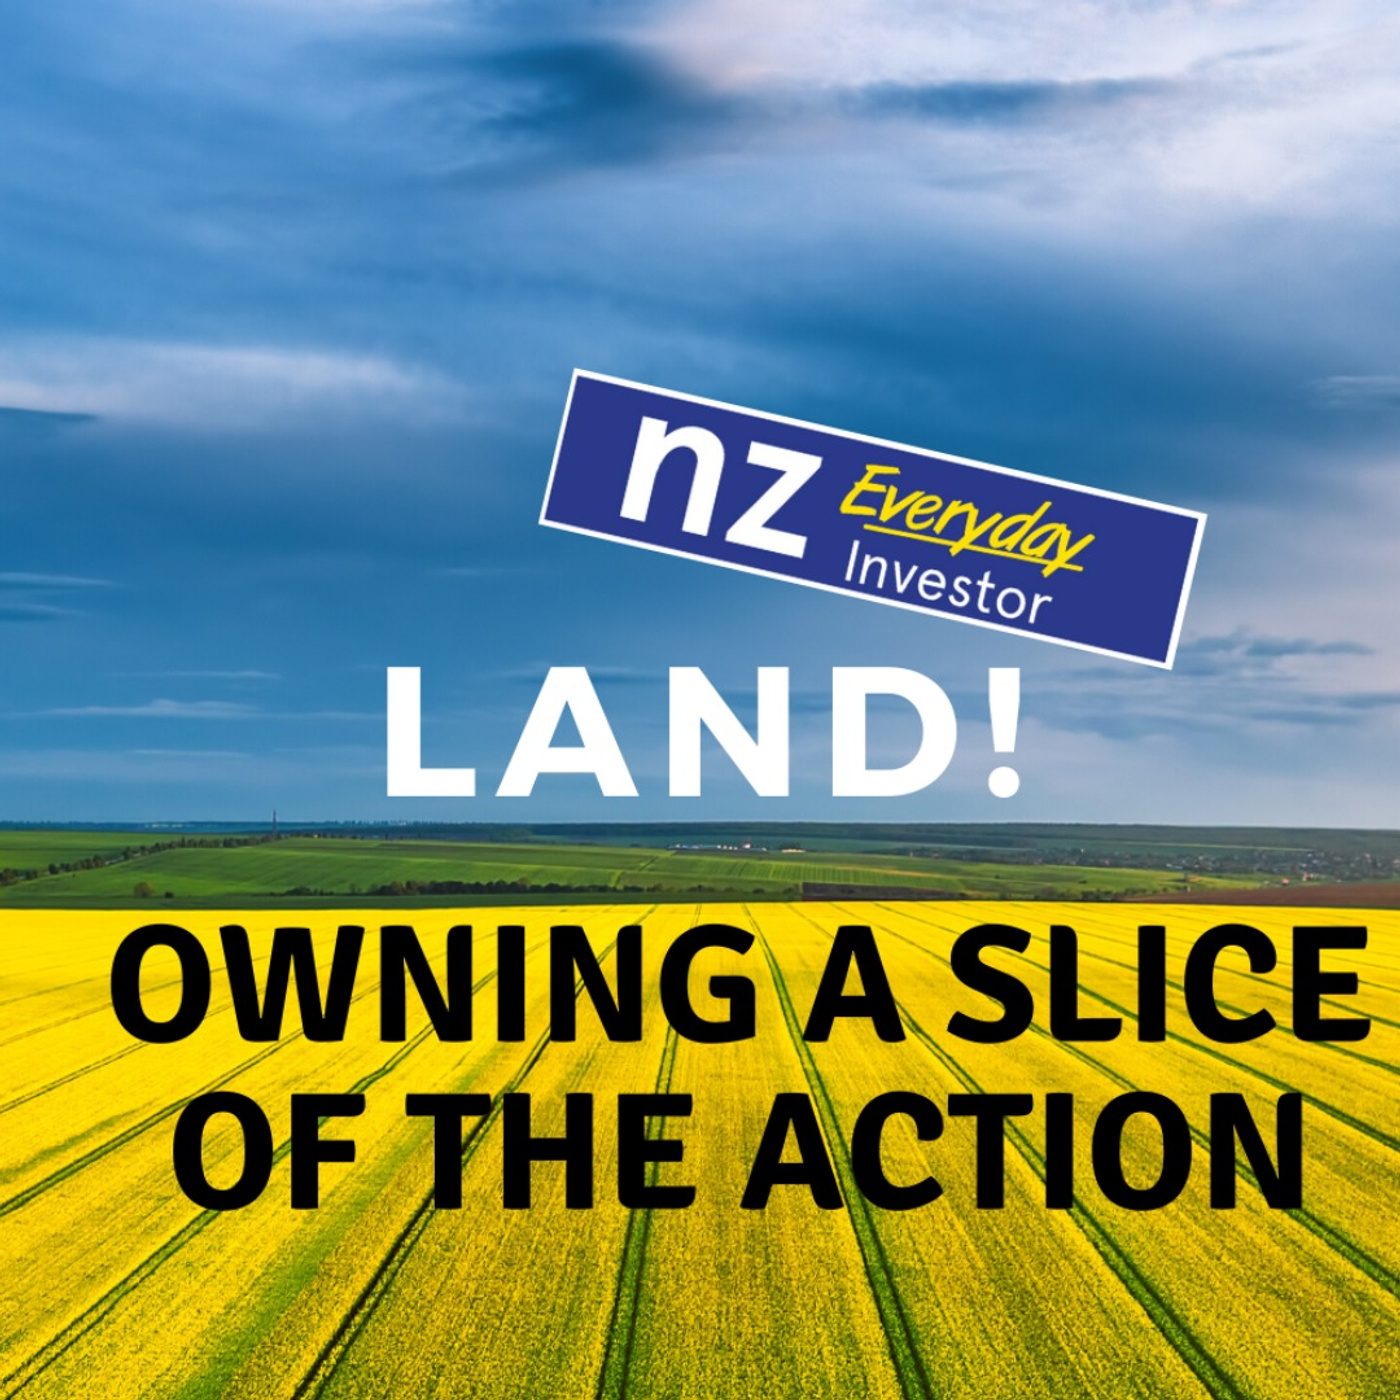 Land - Owning a slice of the action / Di Papadopoulos